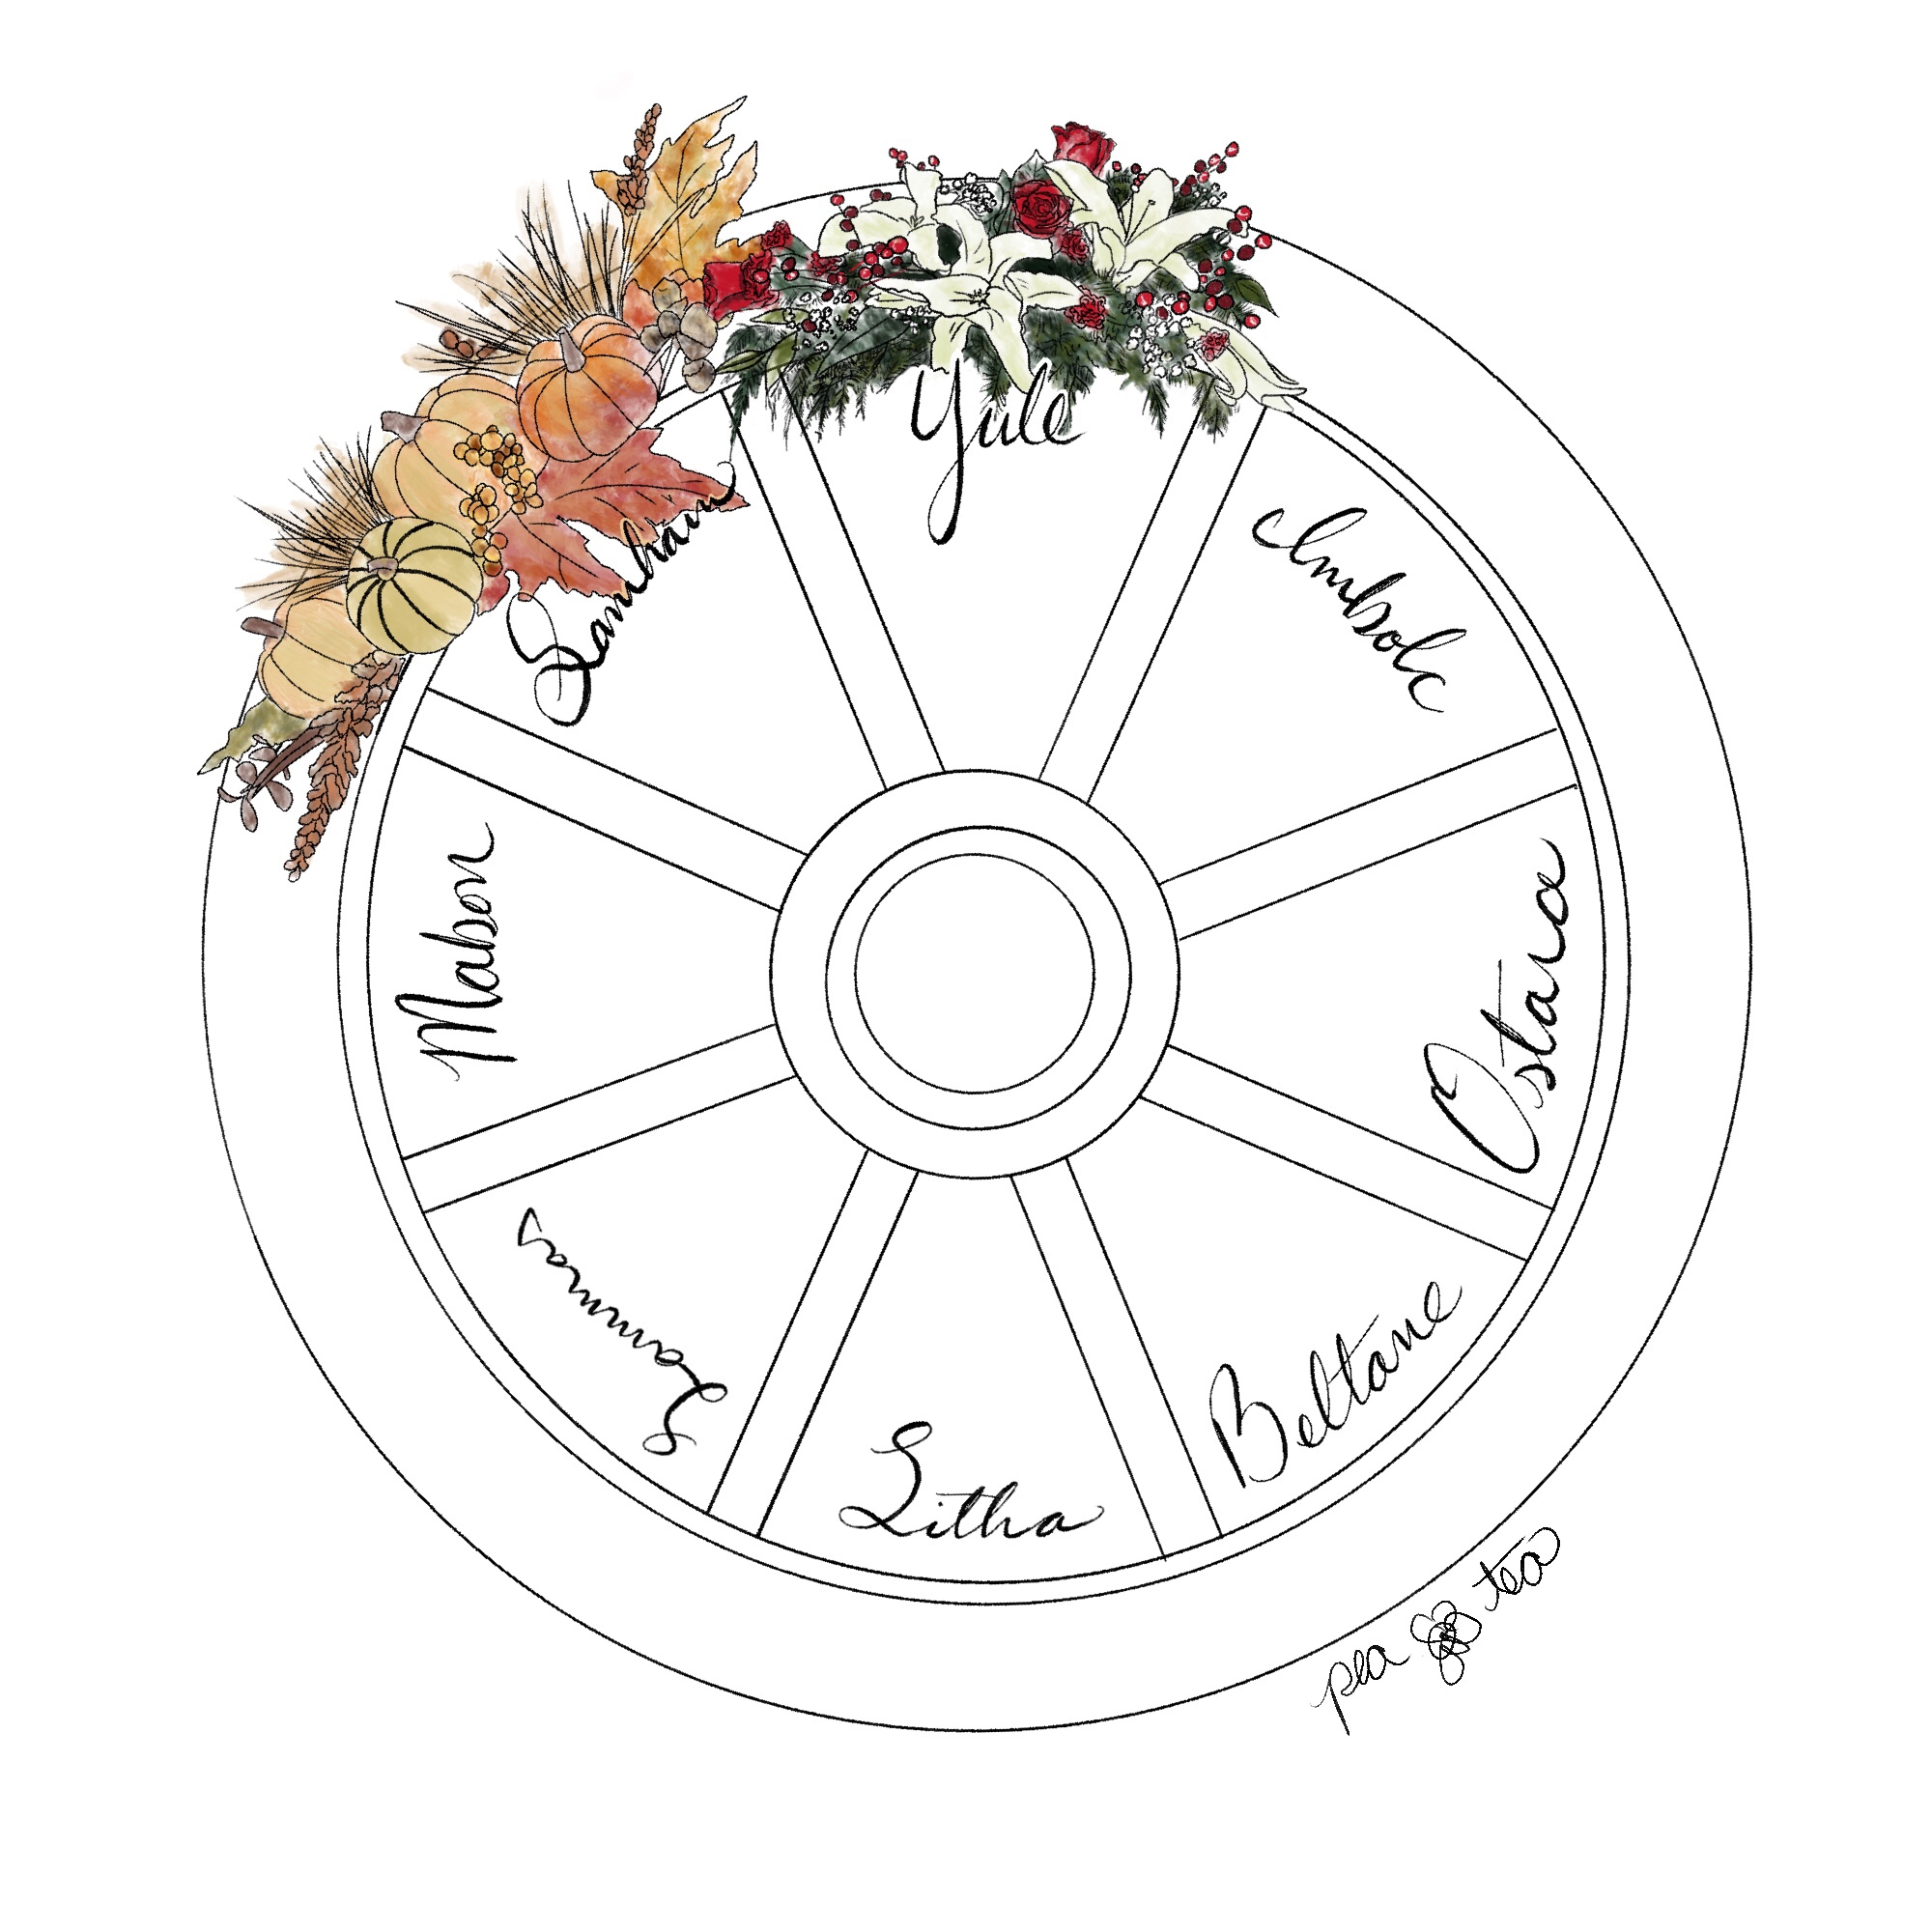 Pencil sketch of a wagon wheel with the pagan sabbats and equinoxes written around the inside of the circle. Yule is at the top, with white poinsettias and red roses painted in watercolors on the outer edge of the wheel.